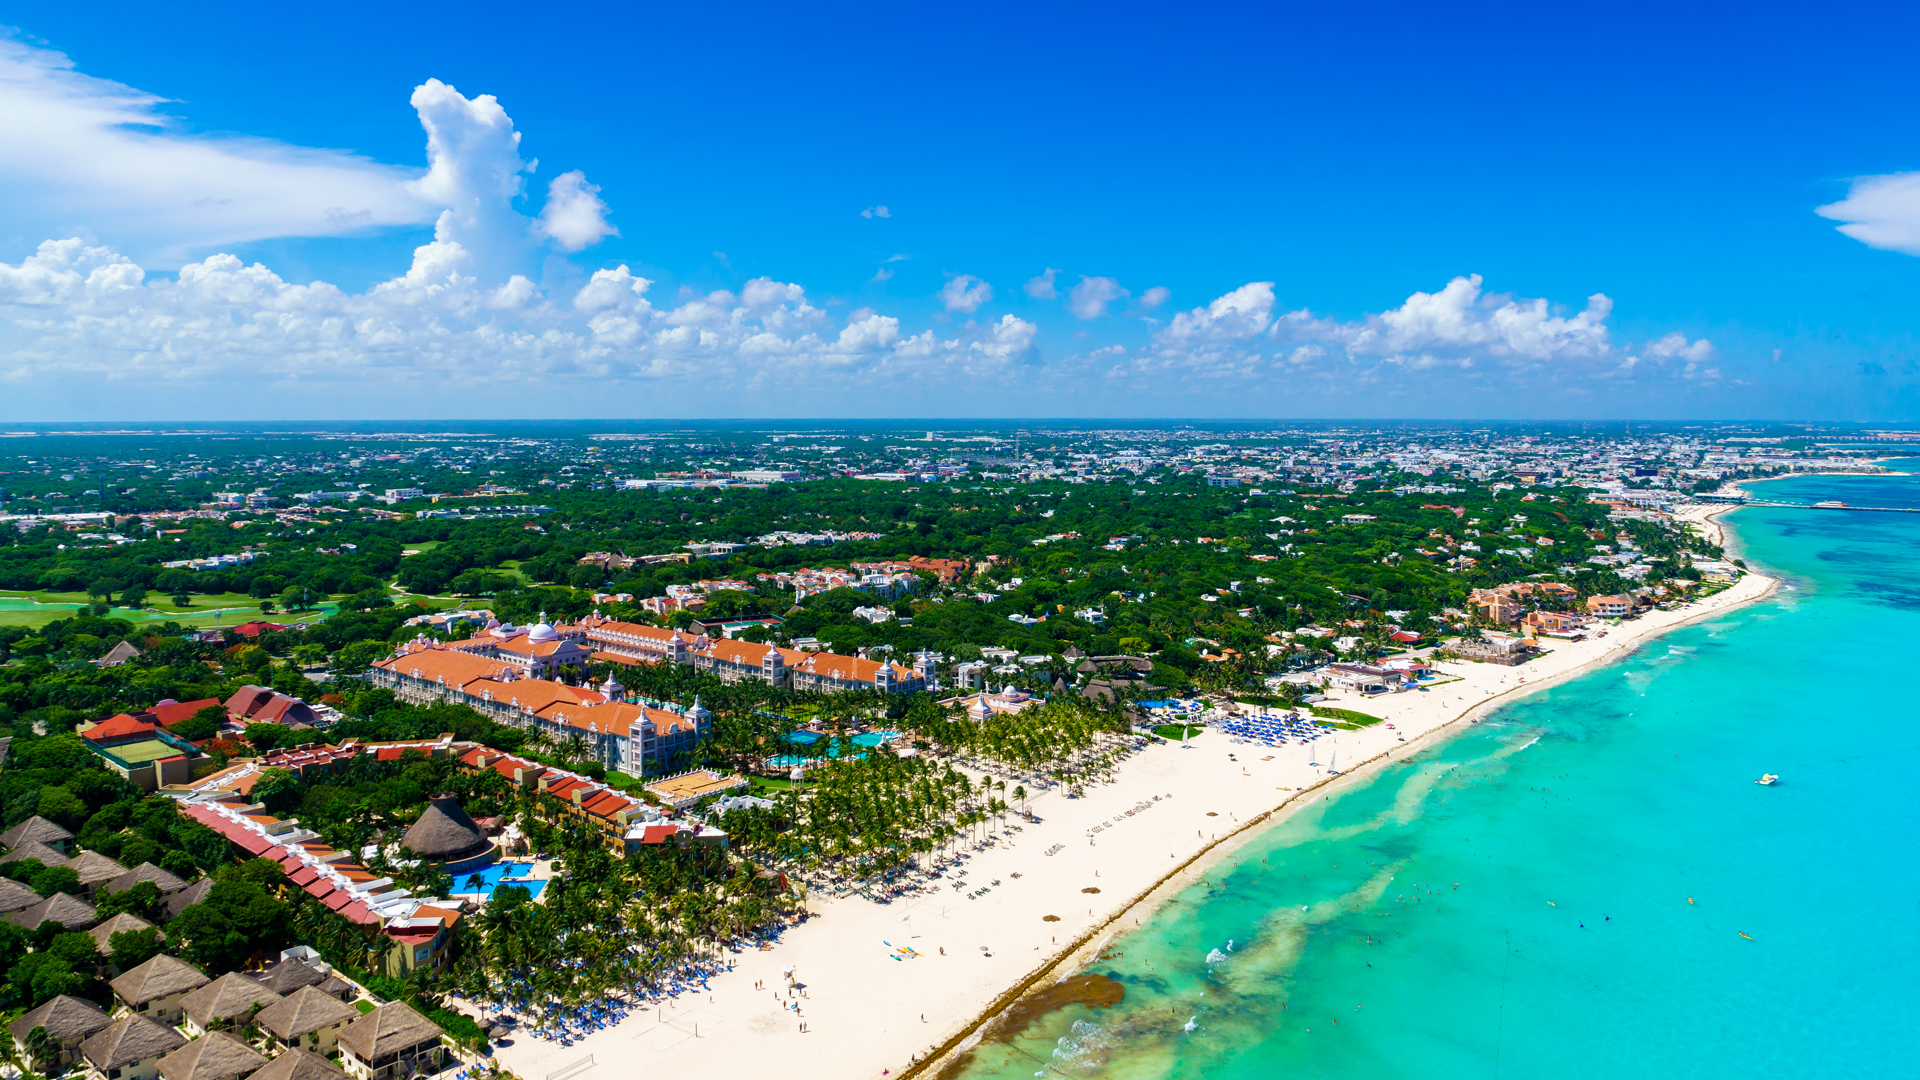 An aerial view of Cancun, Mexico, is seen in this file photo. (Credit: iStock / Getty Images Plus)